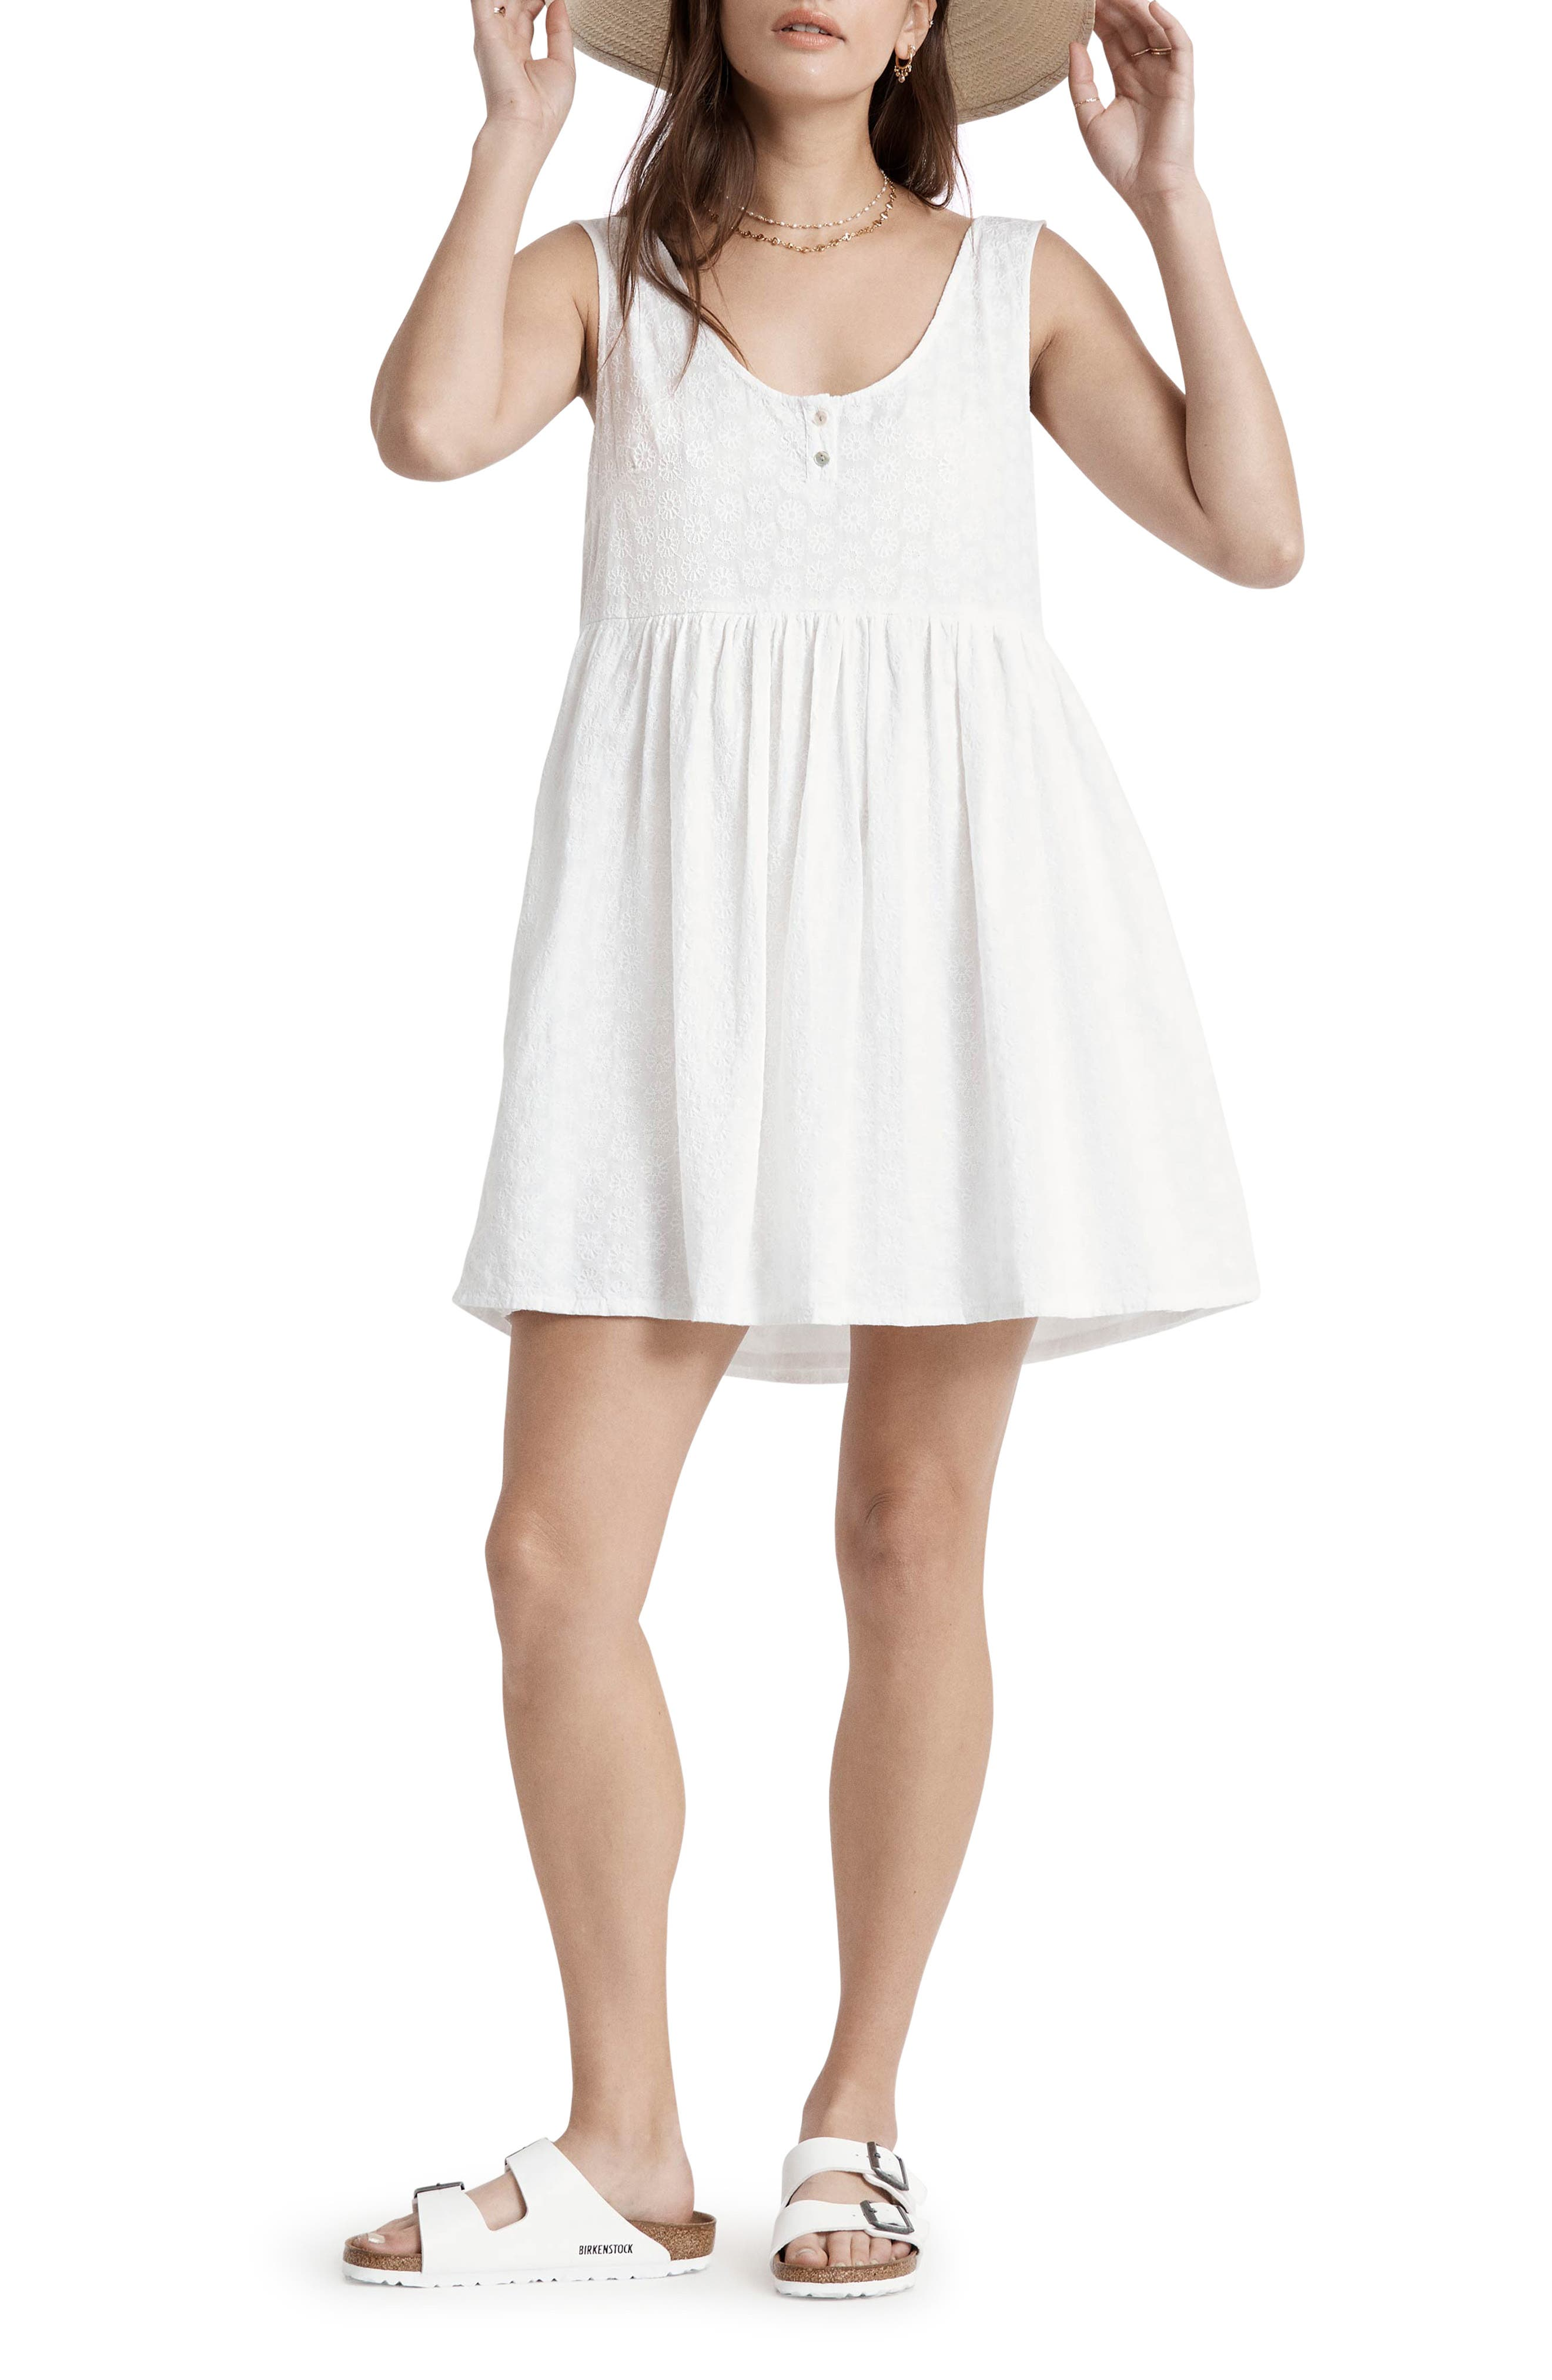 Crowley Embroidered Cotton Babydoll Dress